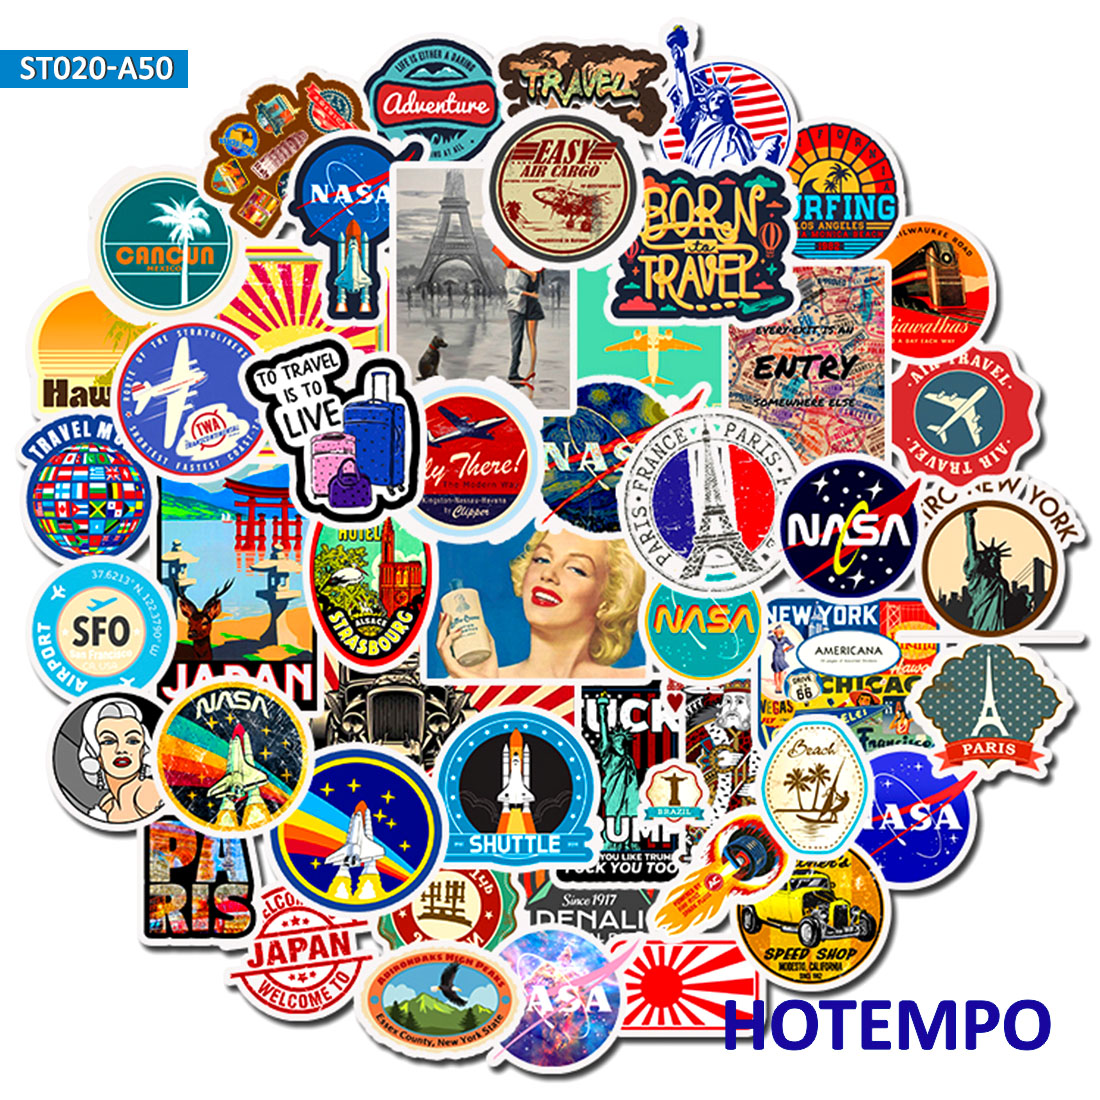 50pcs Travel Decorative Adhesive Stickers DIY Mobile Phone Laptop Luggage Suitcase Guitar Skateboard Fixed Gear Decal Stickers